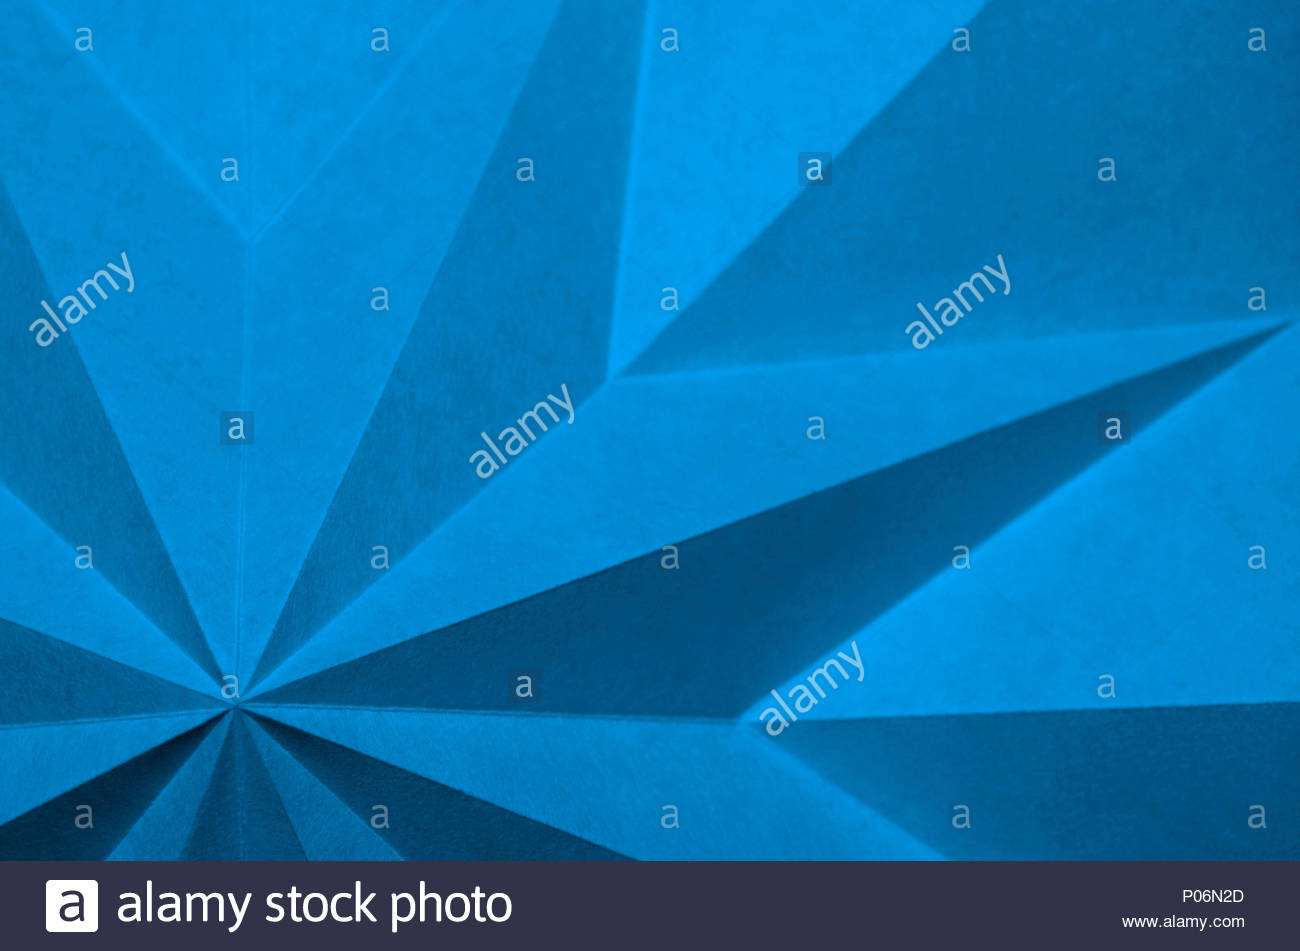 Blue Origami Background Abstract Wallpaper Shallow Focus Graphic Macro Angular Monochrome Folded Paper Pantone 16 4132 Little Boy